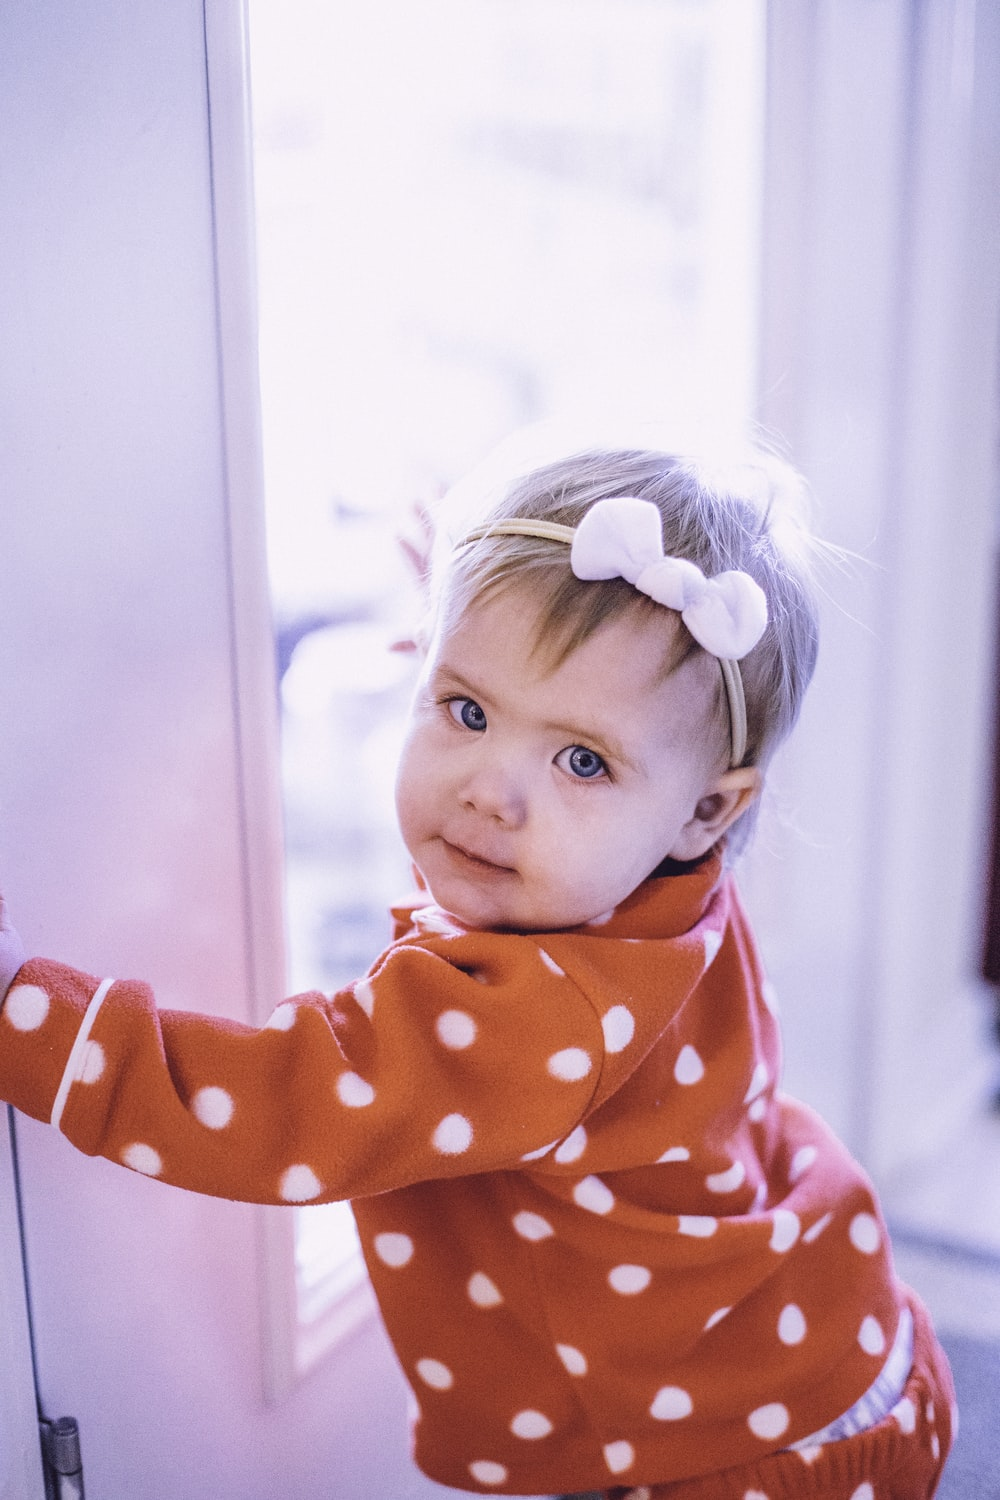 100 baby girl pictures download free images stock photos on